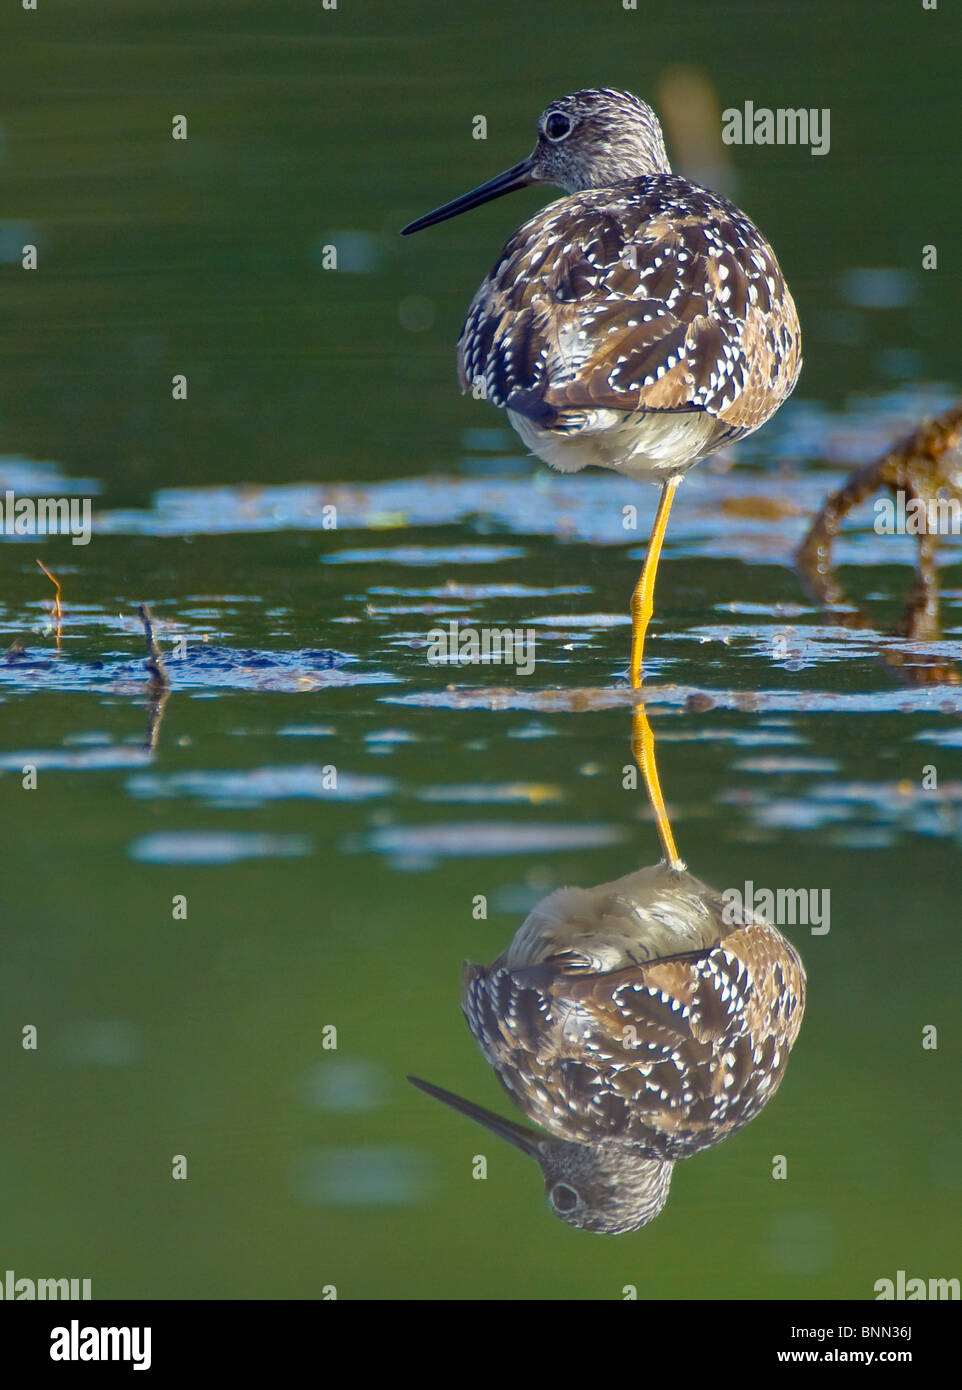 A Lesser Yellowlegs standing on one leg is reflected in the still water of Westerchester Lagoon, Anchorage, Alaska - Stock Image